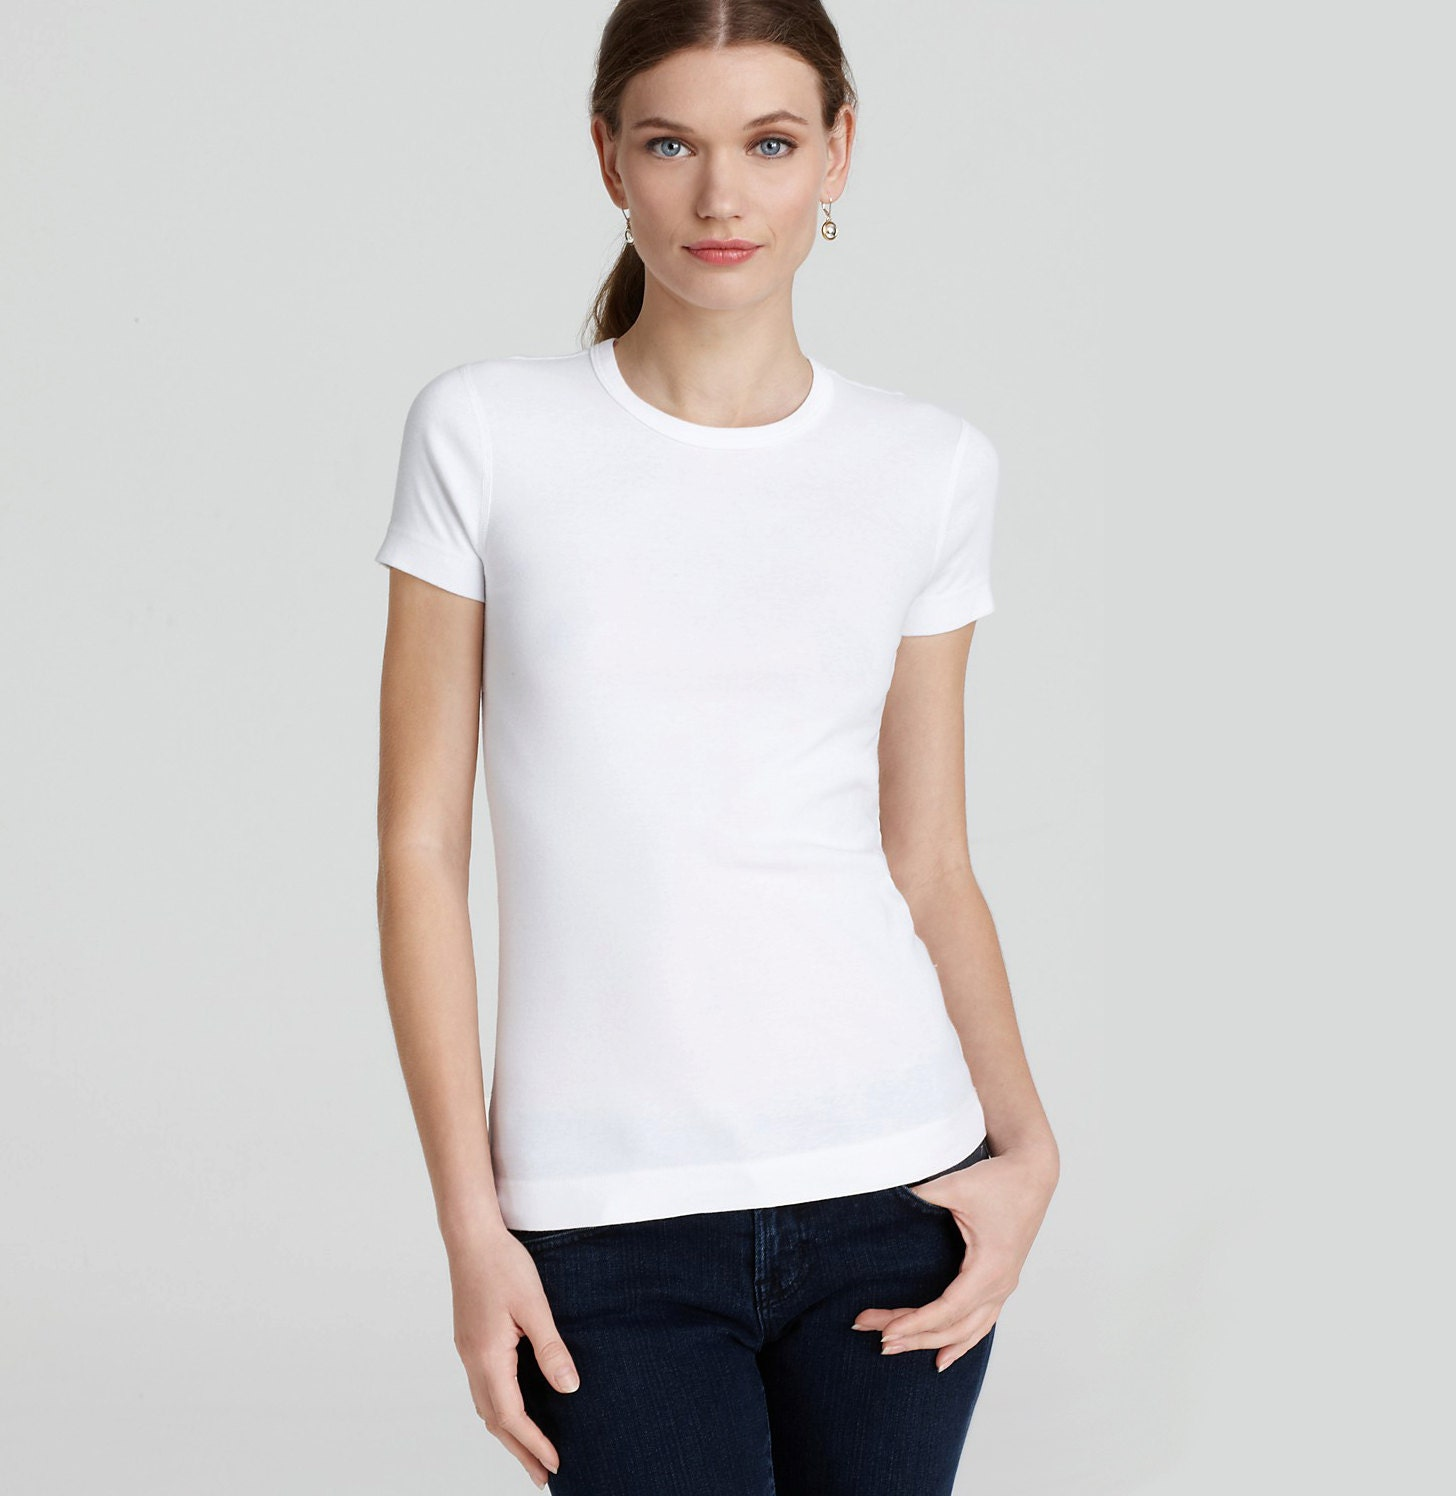 Plain white tshirt plain tshirt plain tshirts plain tee for Plain girls t shirts